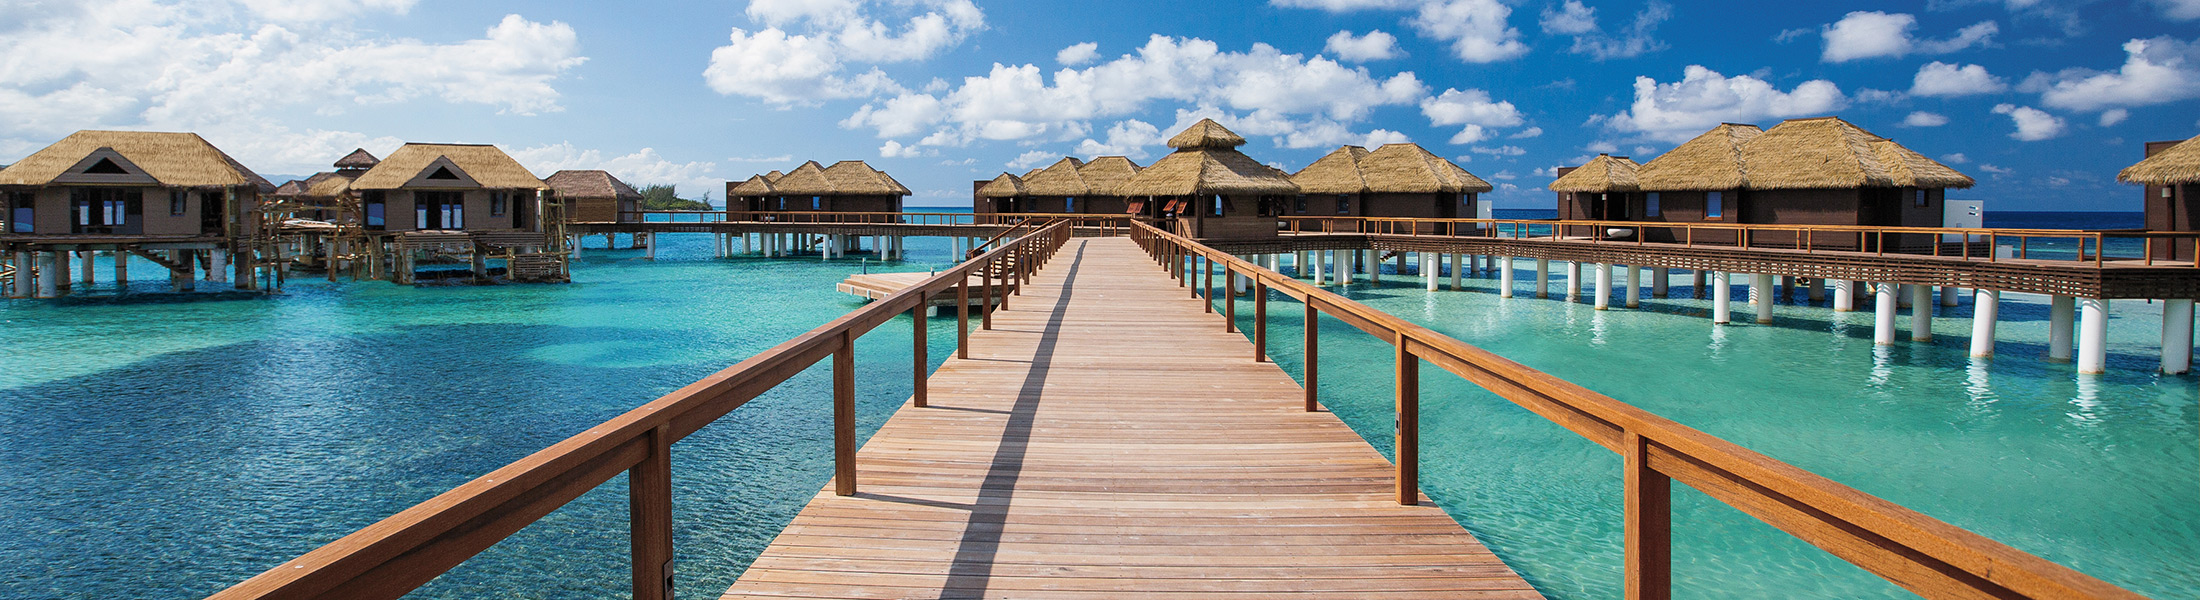 Jetty to the Overwater Villas at Sandals Royal Caribbean